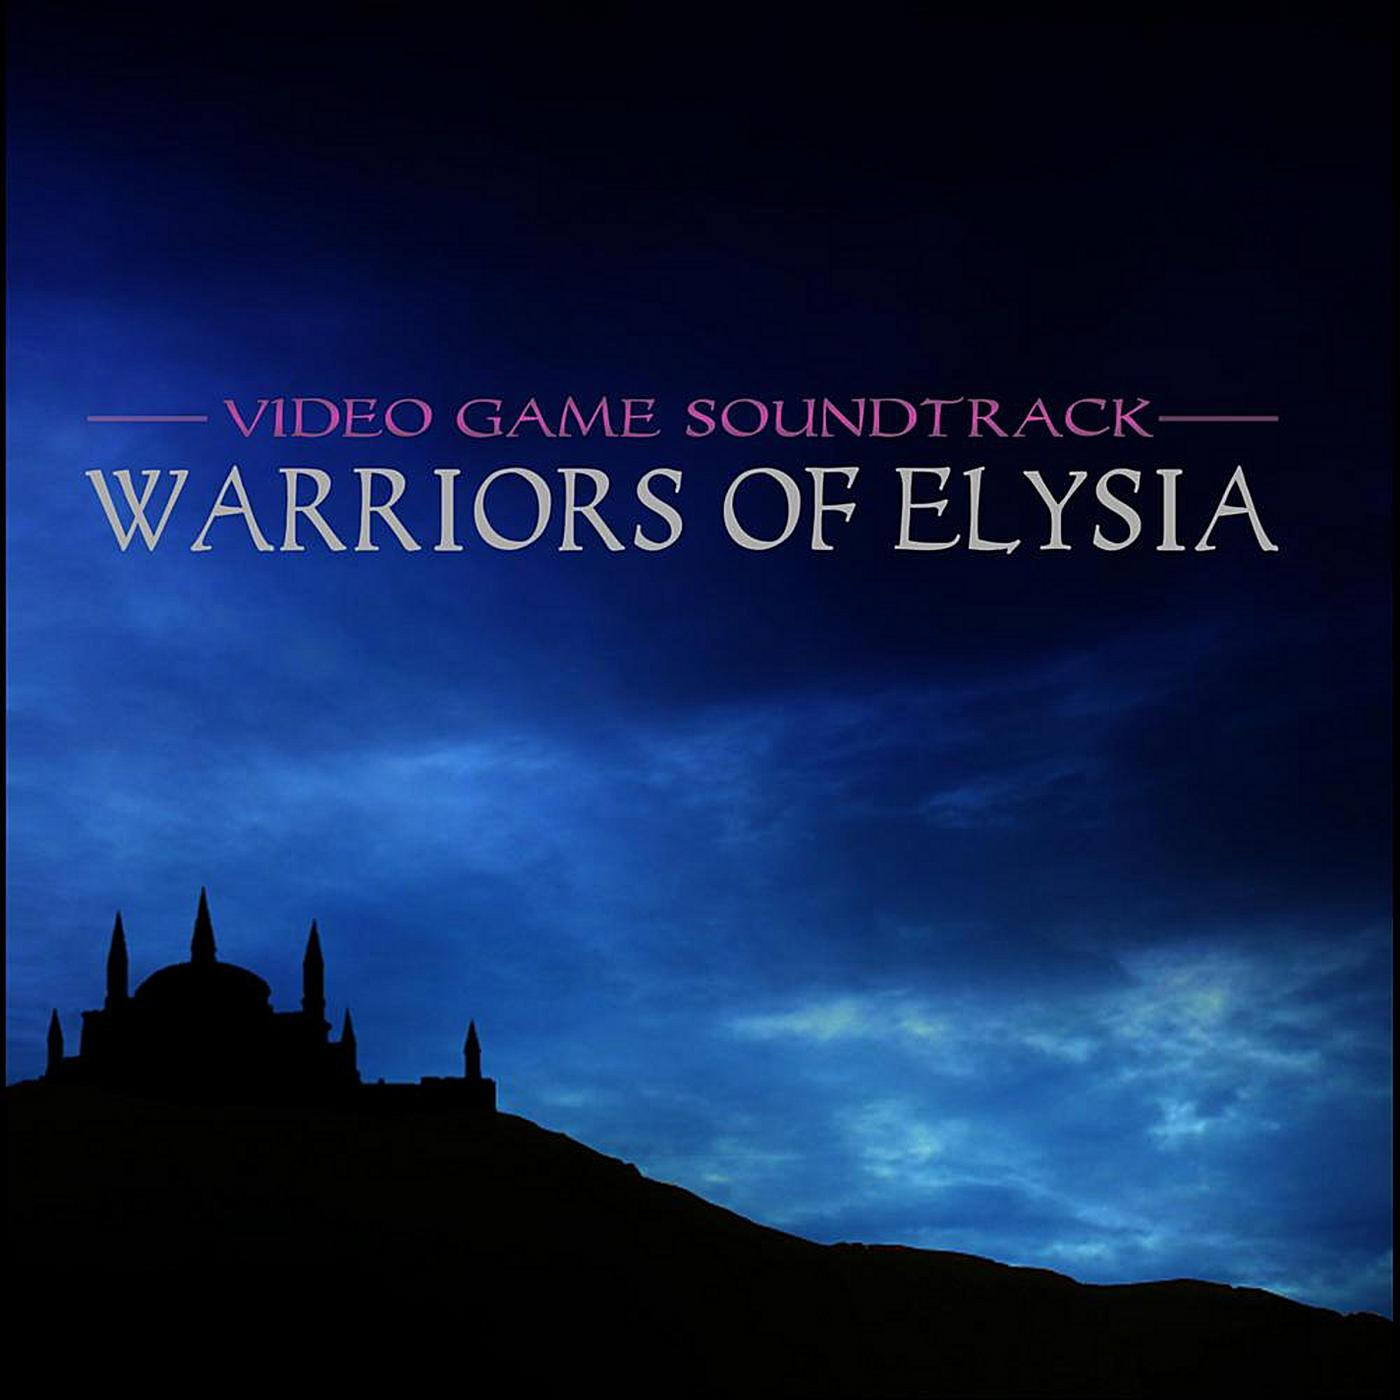 Warriors Movie Clips: Warriors Of Elysia Video Game Soundtrack. Soundtrack From